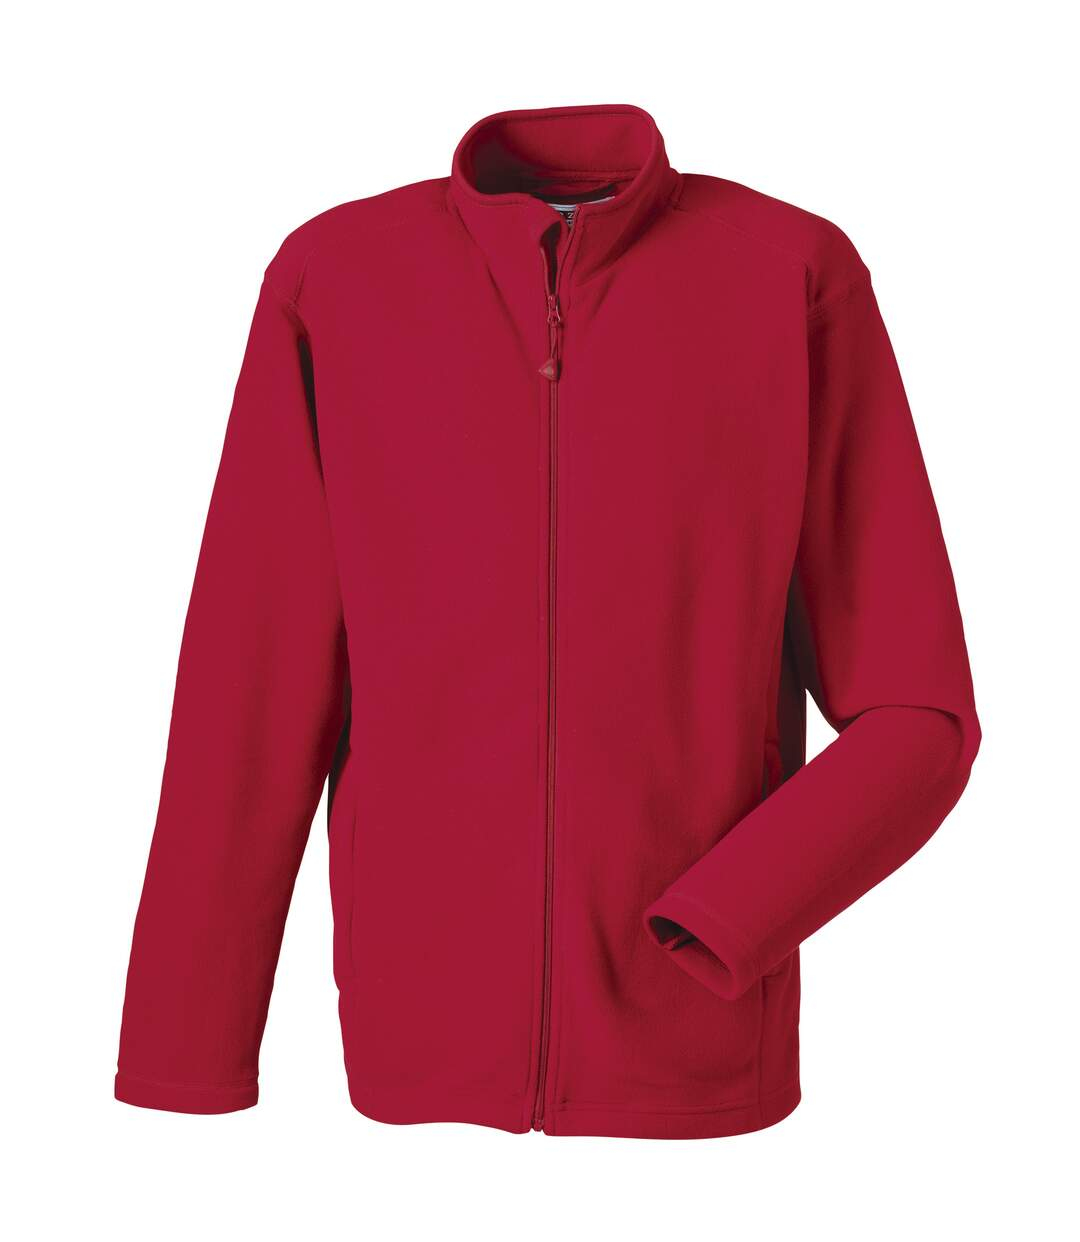 Russell Europe Mens Full Zip Anti-Pill Microfleece Top (Classic Red) - UTRW3282